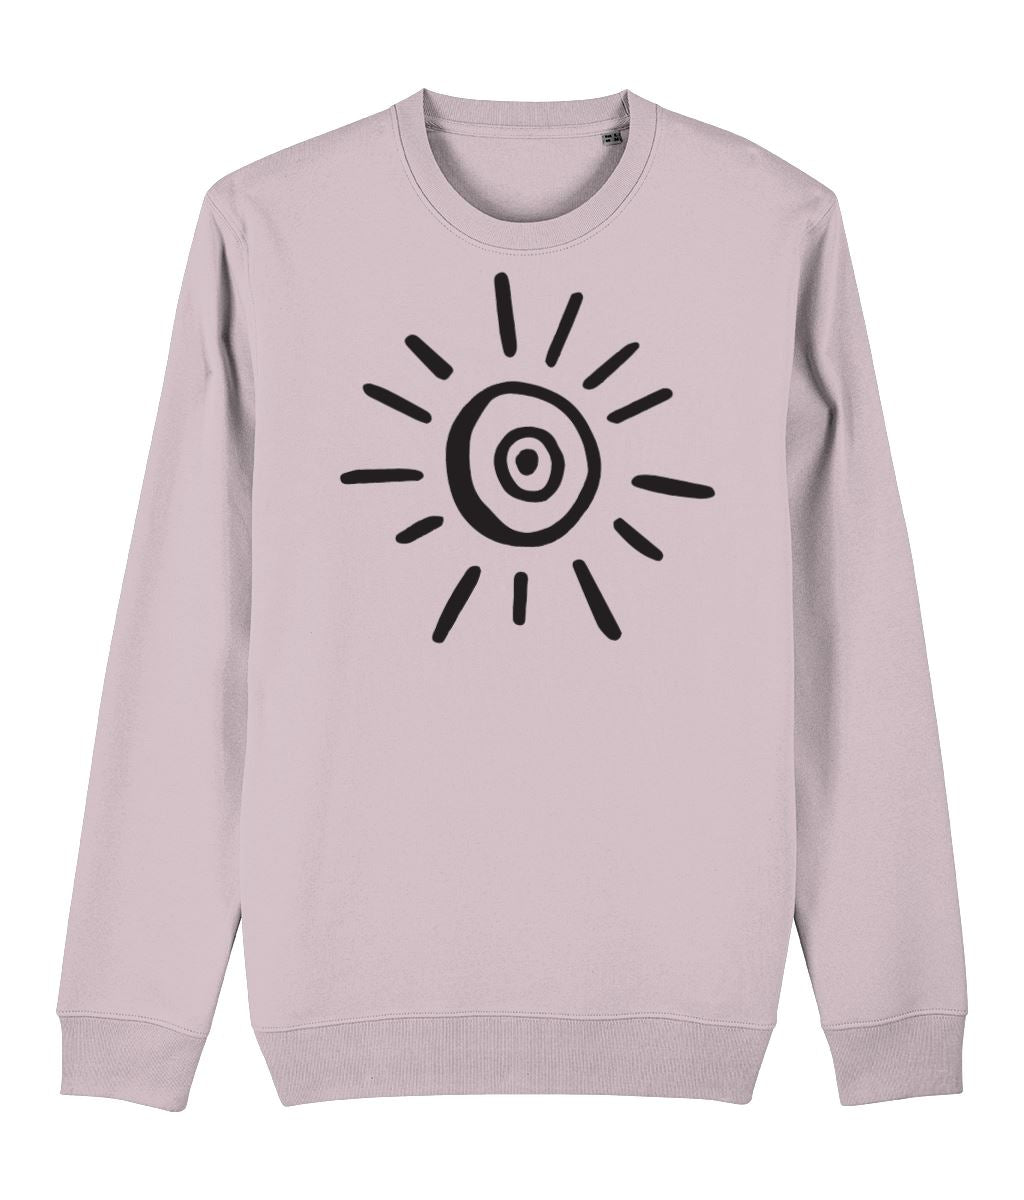 Sun Symbol Sweatshirt Clothing IndianBelieves Cotton Pink X-Small